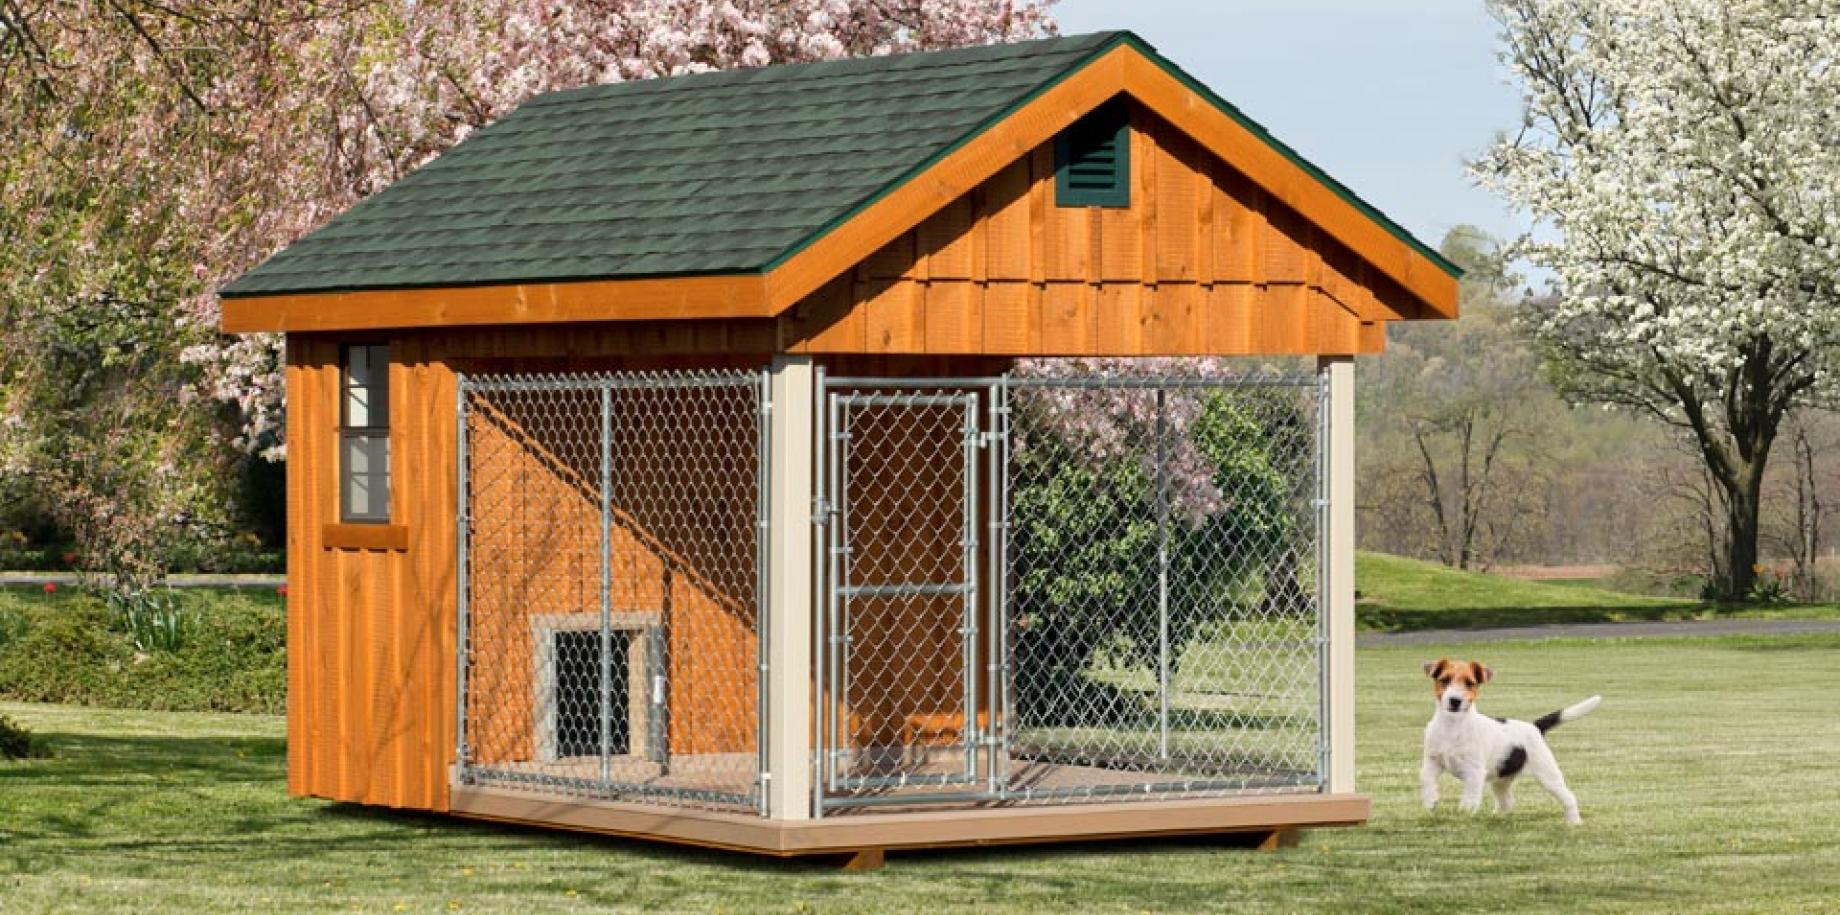 8' x 12' Elite dog kennel